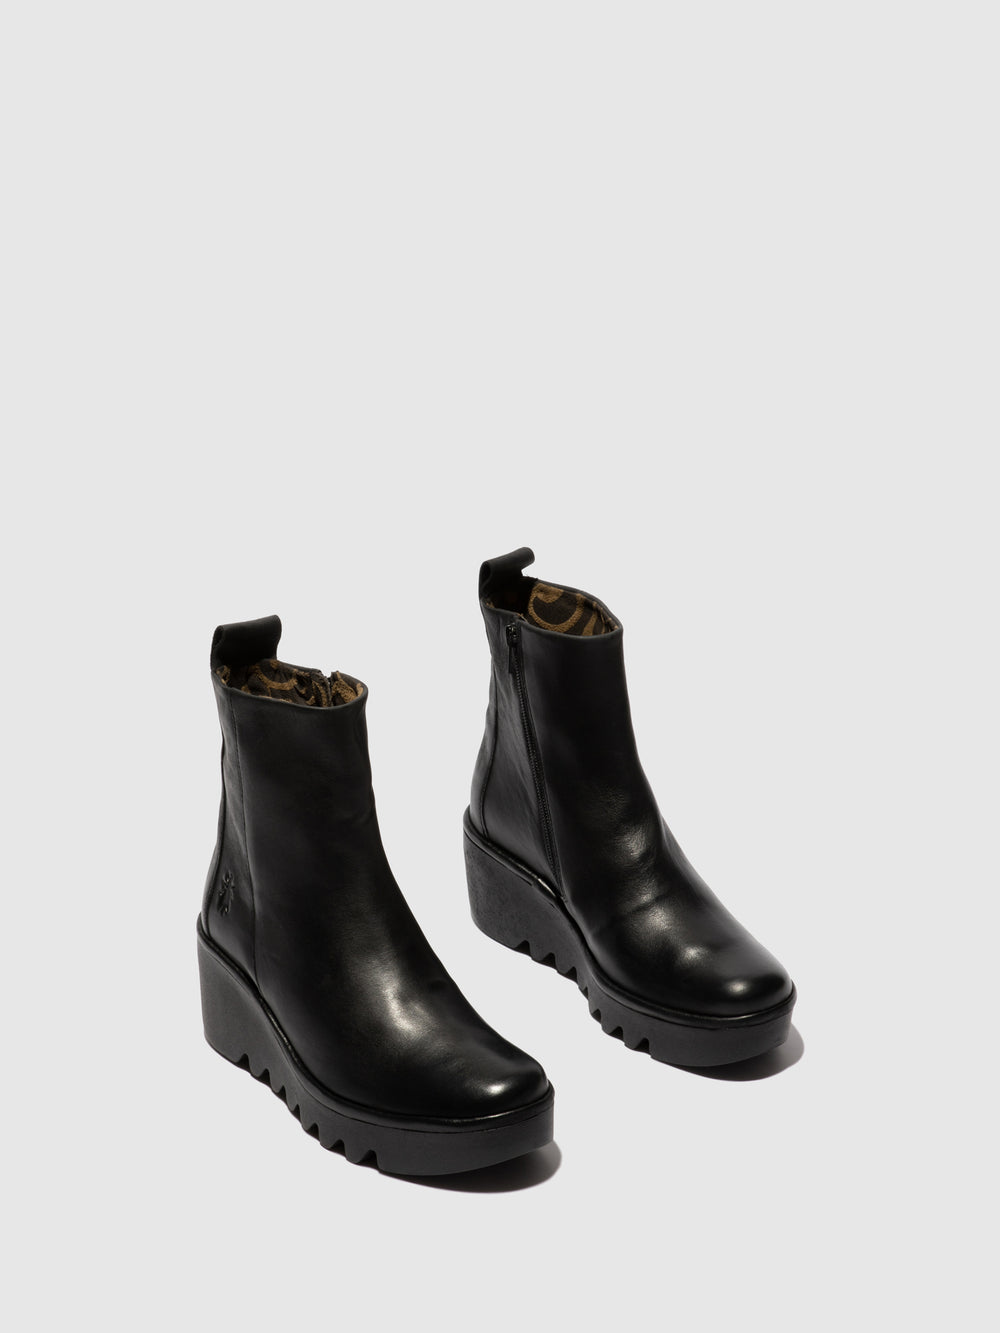 Zip Up Ankle Boots BALE250FLY VERONA BLACK